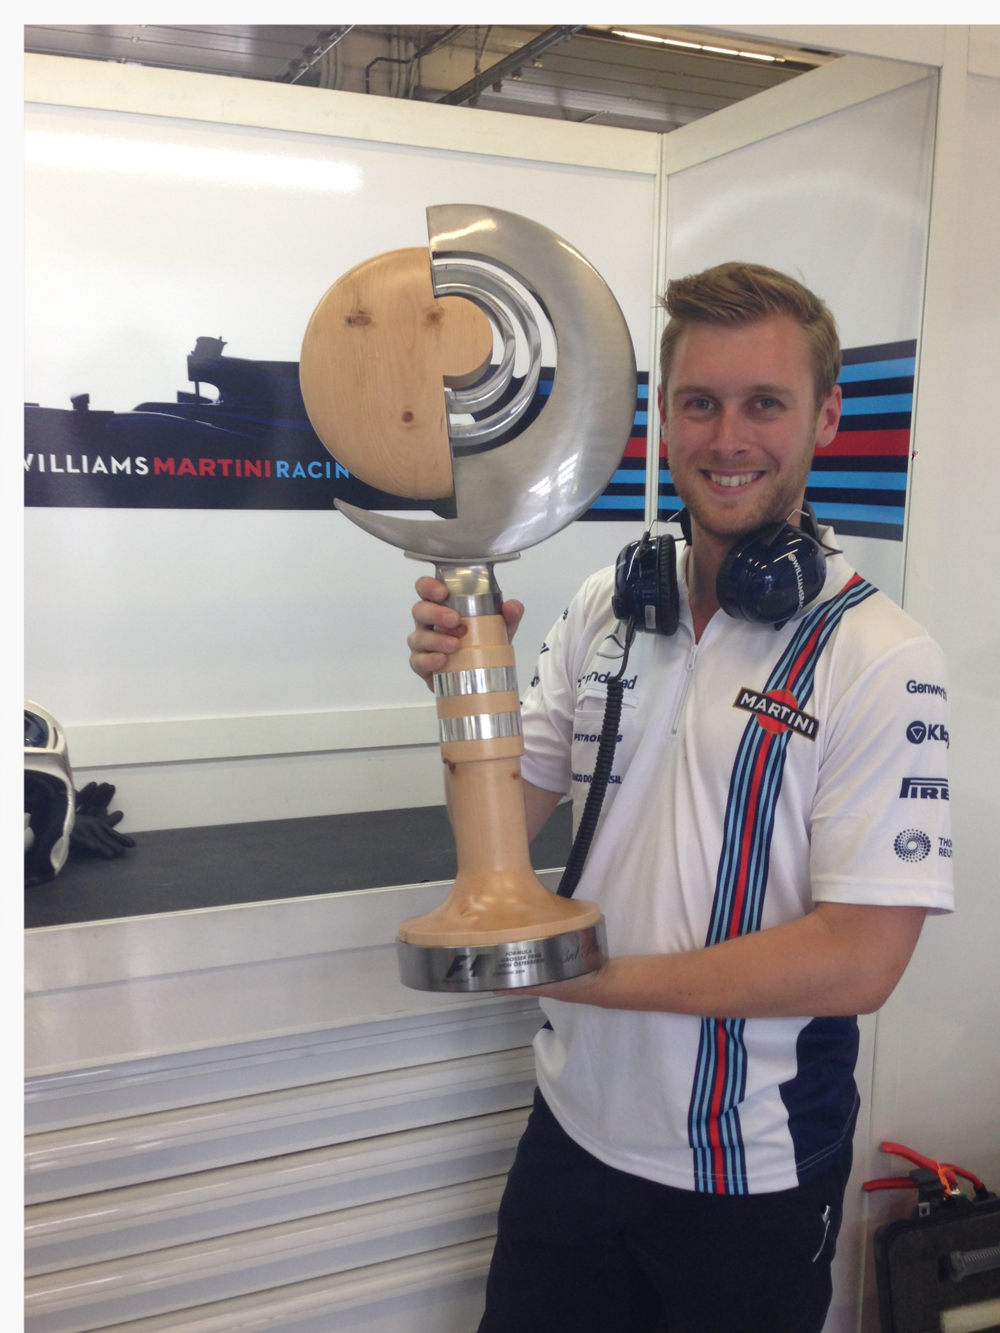 The Woodstock Chiropractor at the Austrian Grand Prix after Valtteri Bottas won a place on the podium